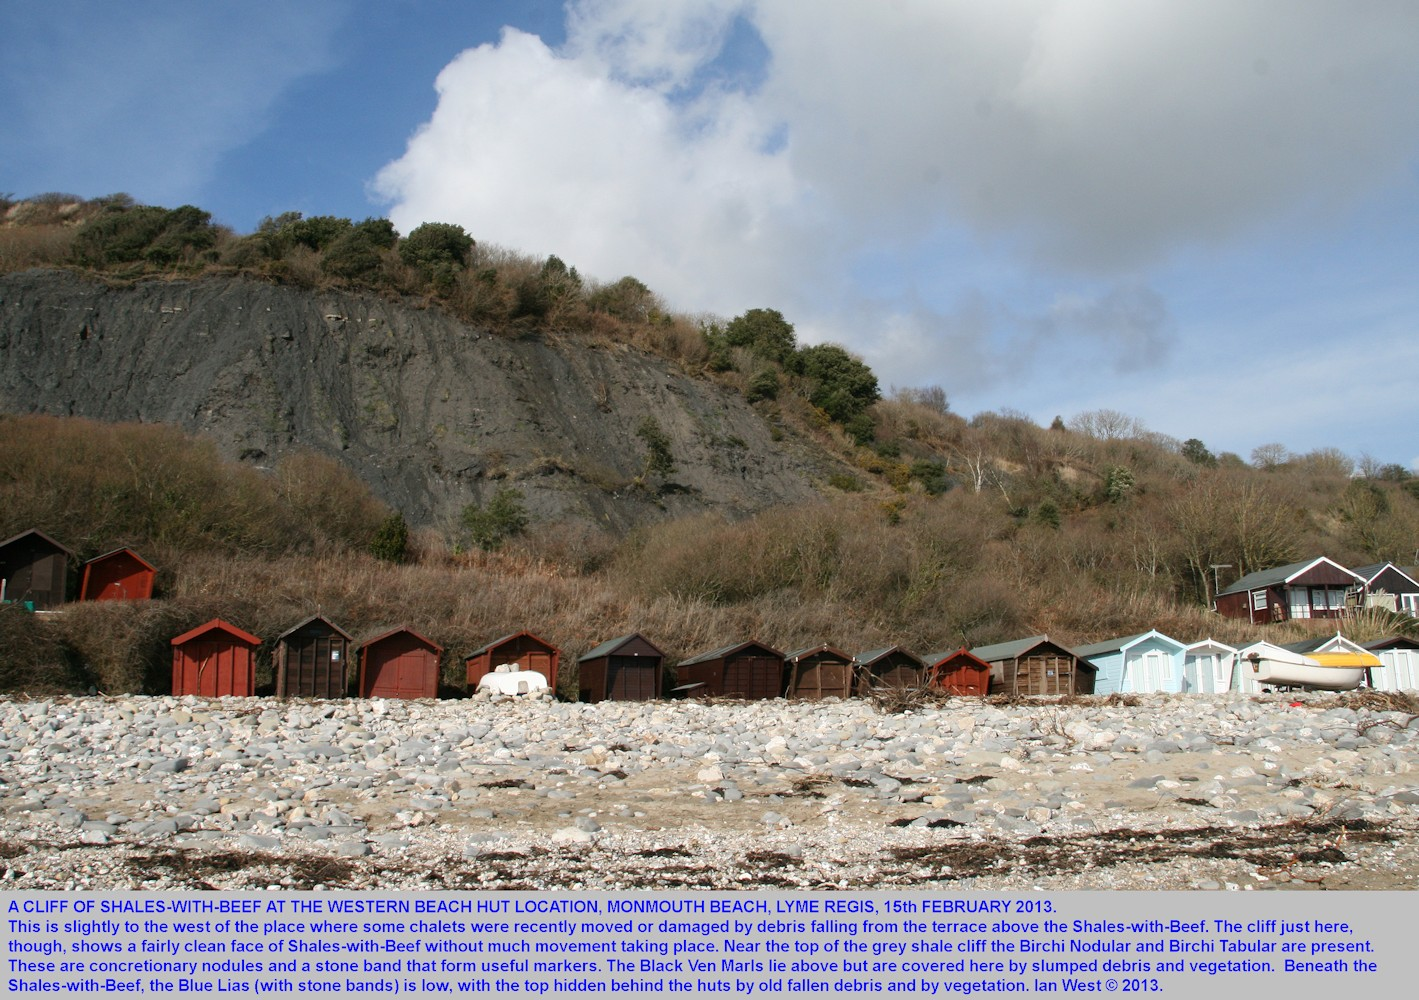 Relatively stable cliff of Shales-with-Beef at the beach huts, Monmouth Beach, Lyme Regis, Dorset, February 2013